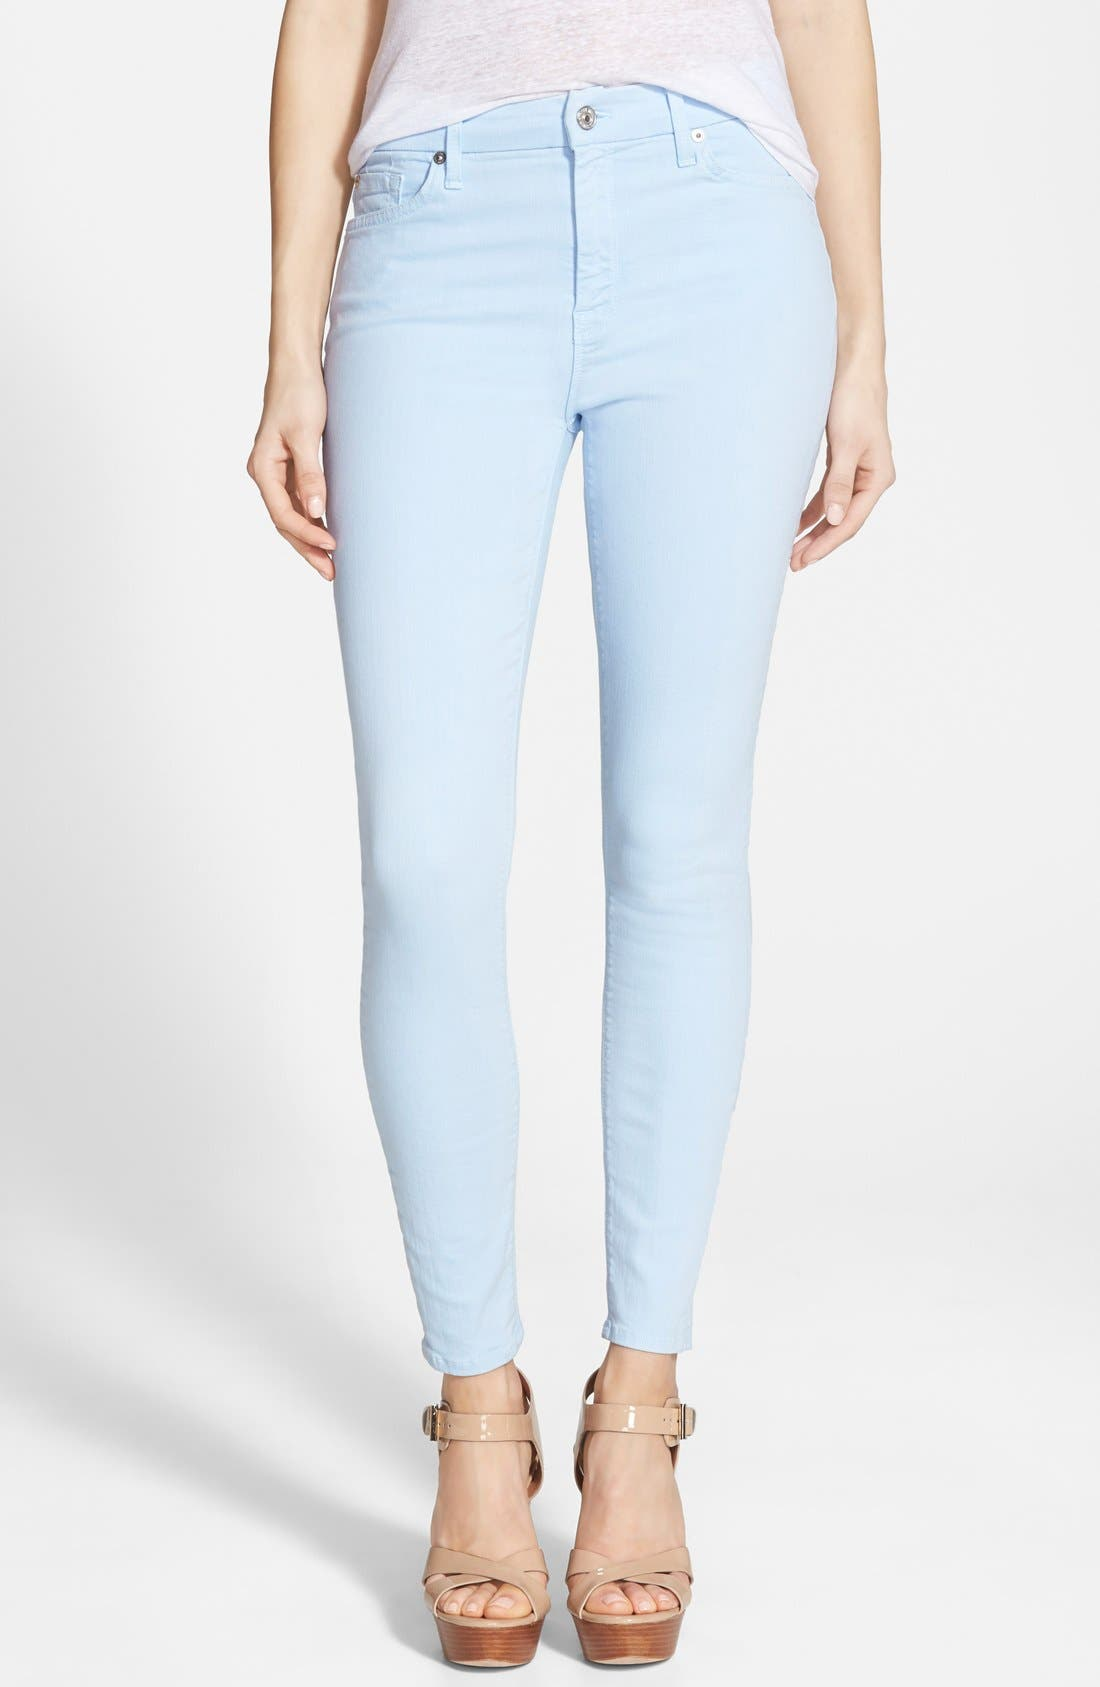 Alternate Image 1 Selected - 7 For All Mankind® High Rise Ankle Skinny Jeans (Cool Water Blue)